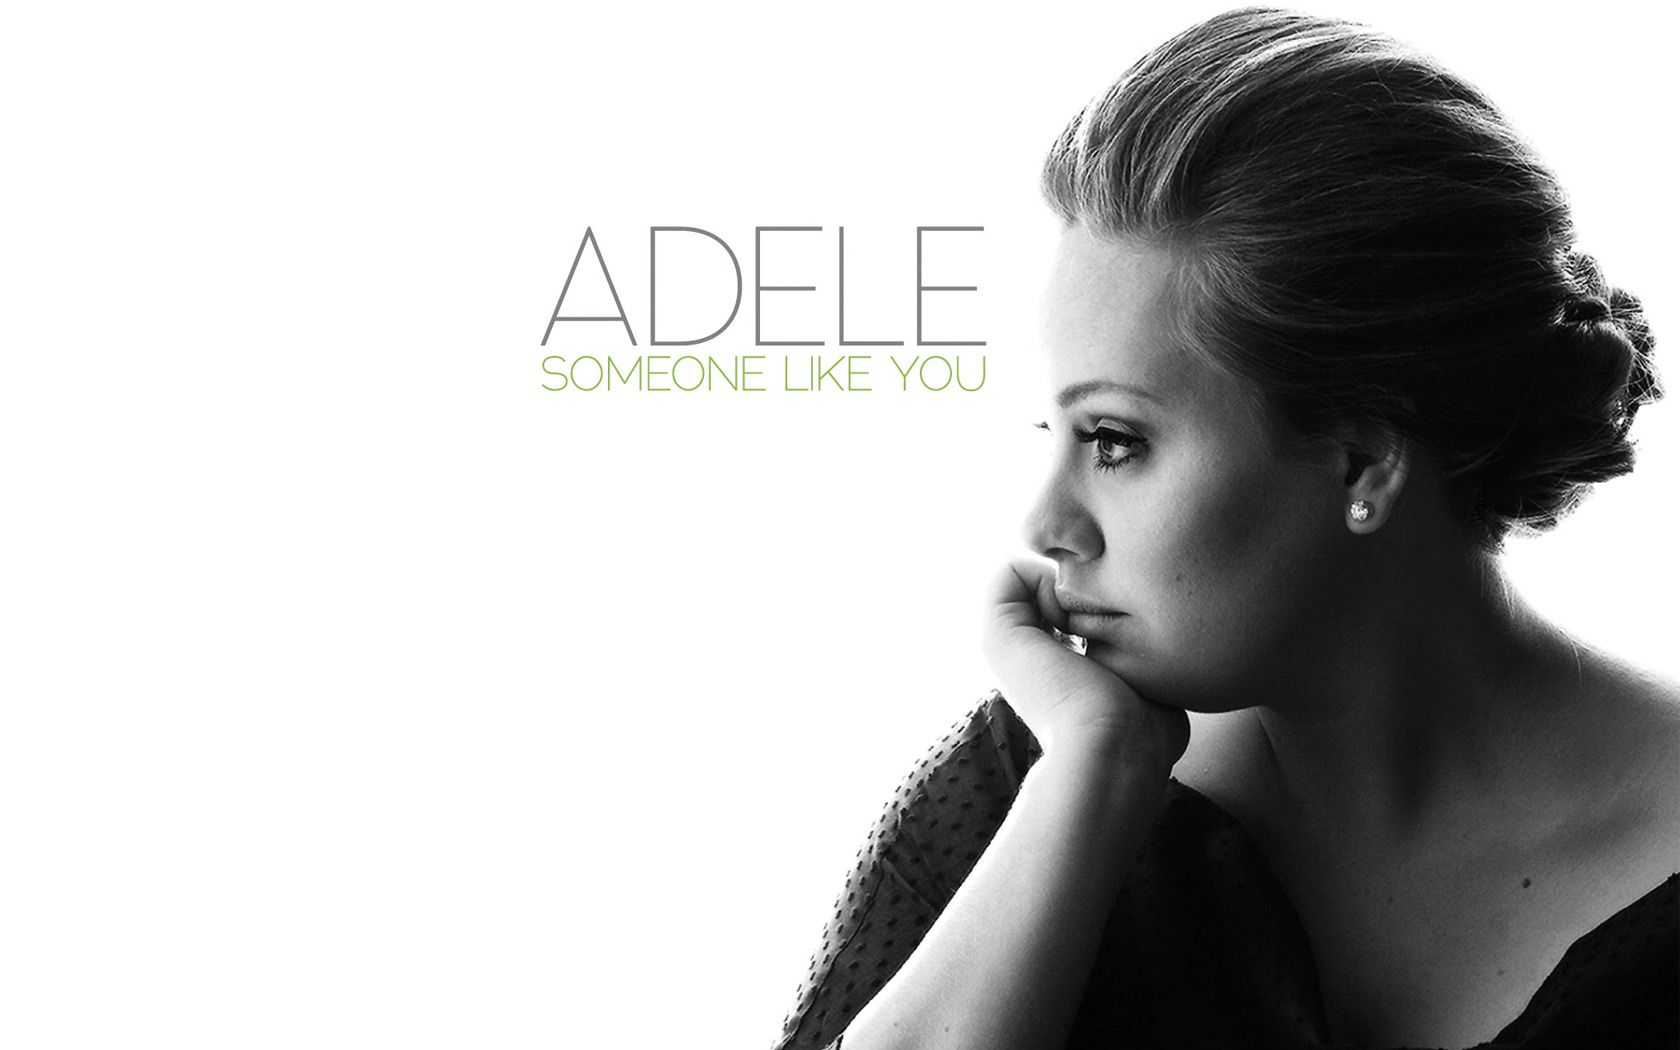 Adele someone like you album covers google search album covers adele someone like you album covers google search baditri Image collections